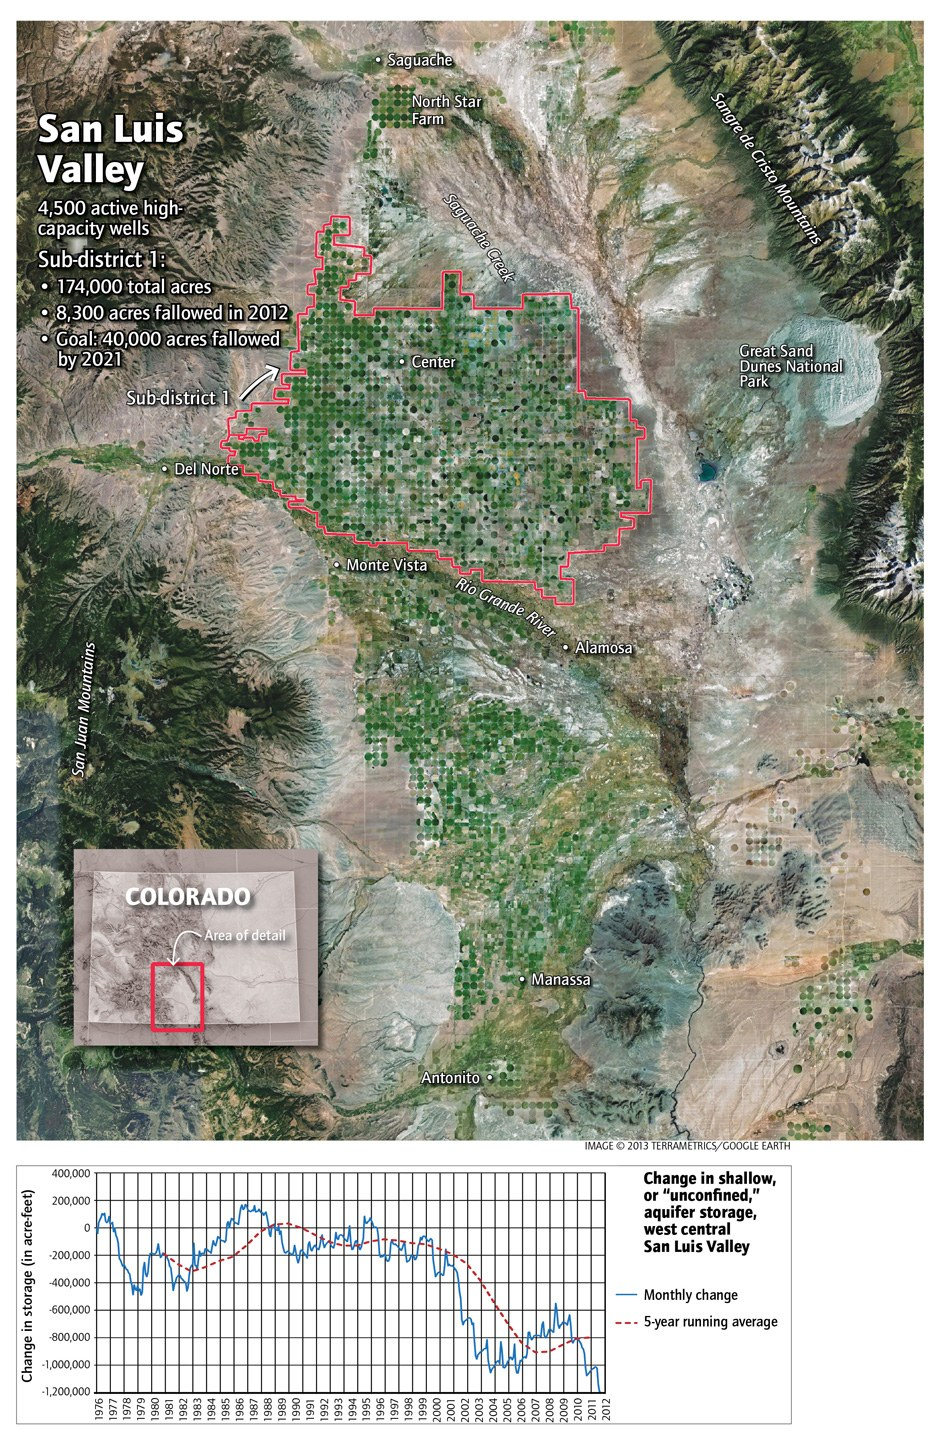 Agriculture and water use in the San Luis Valley